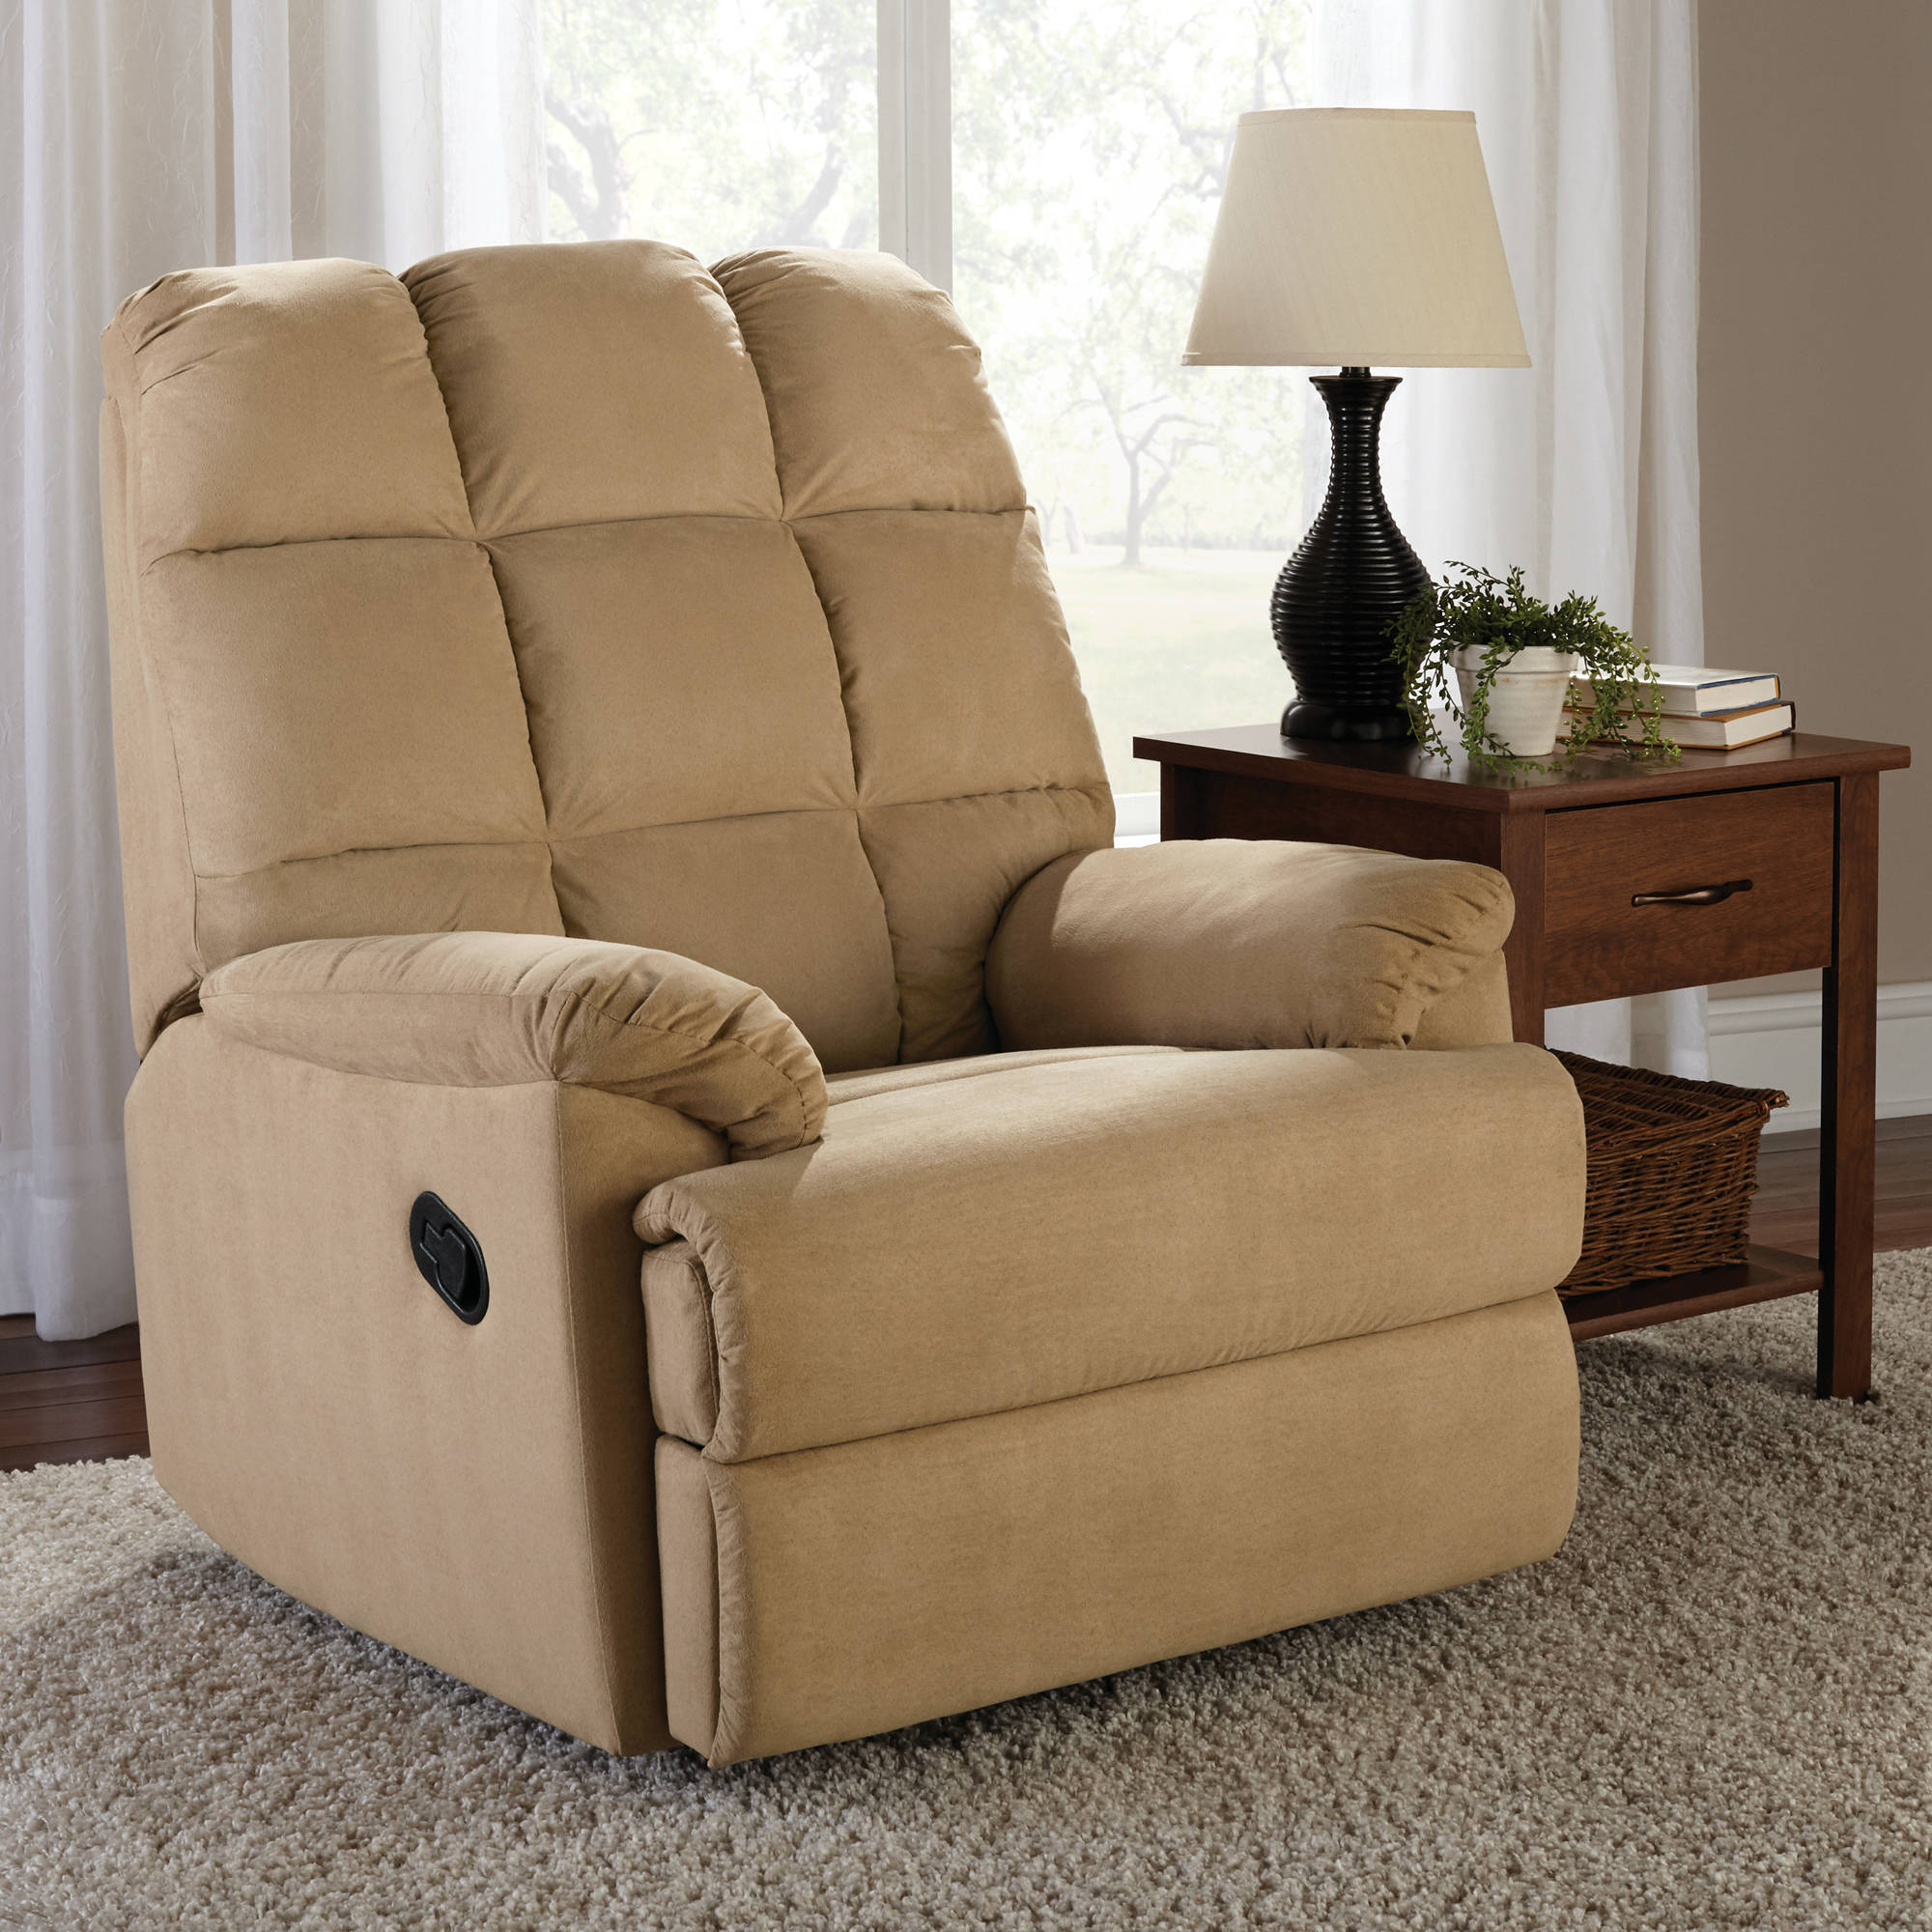 Used Living Room Chairs Living Room Furniture Walmartcom